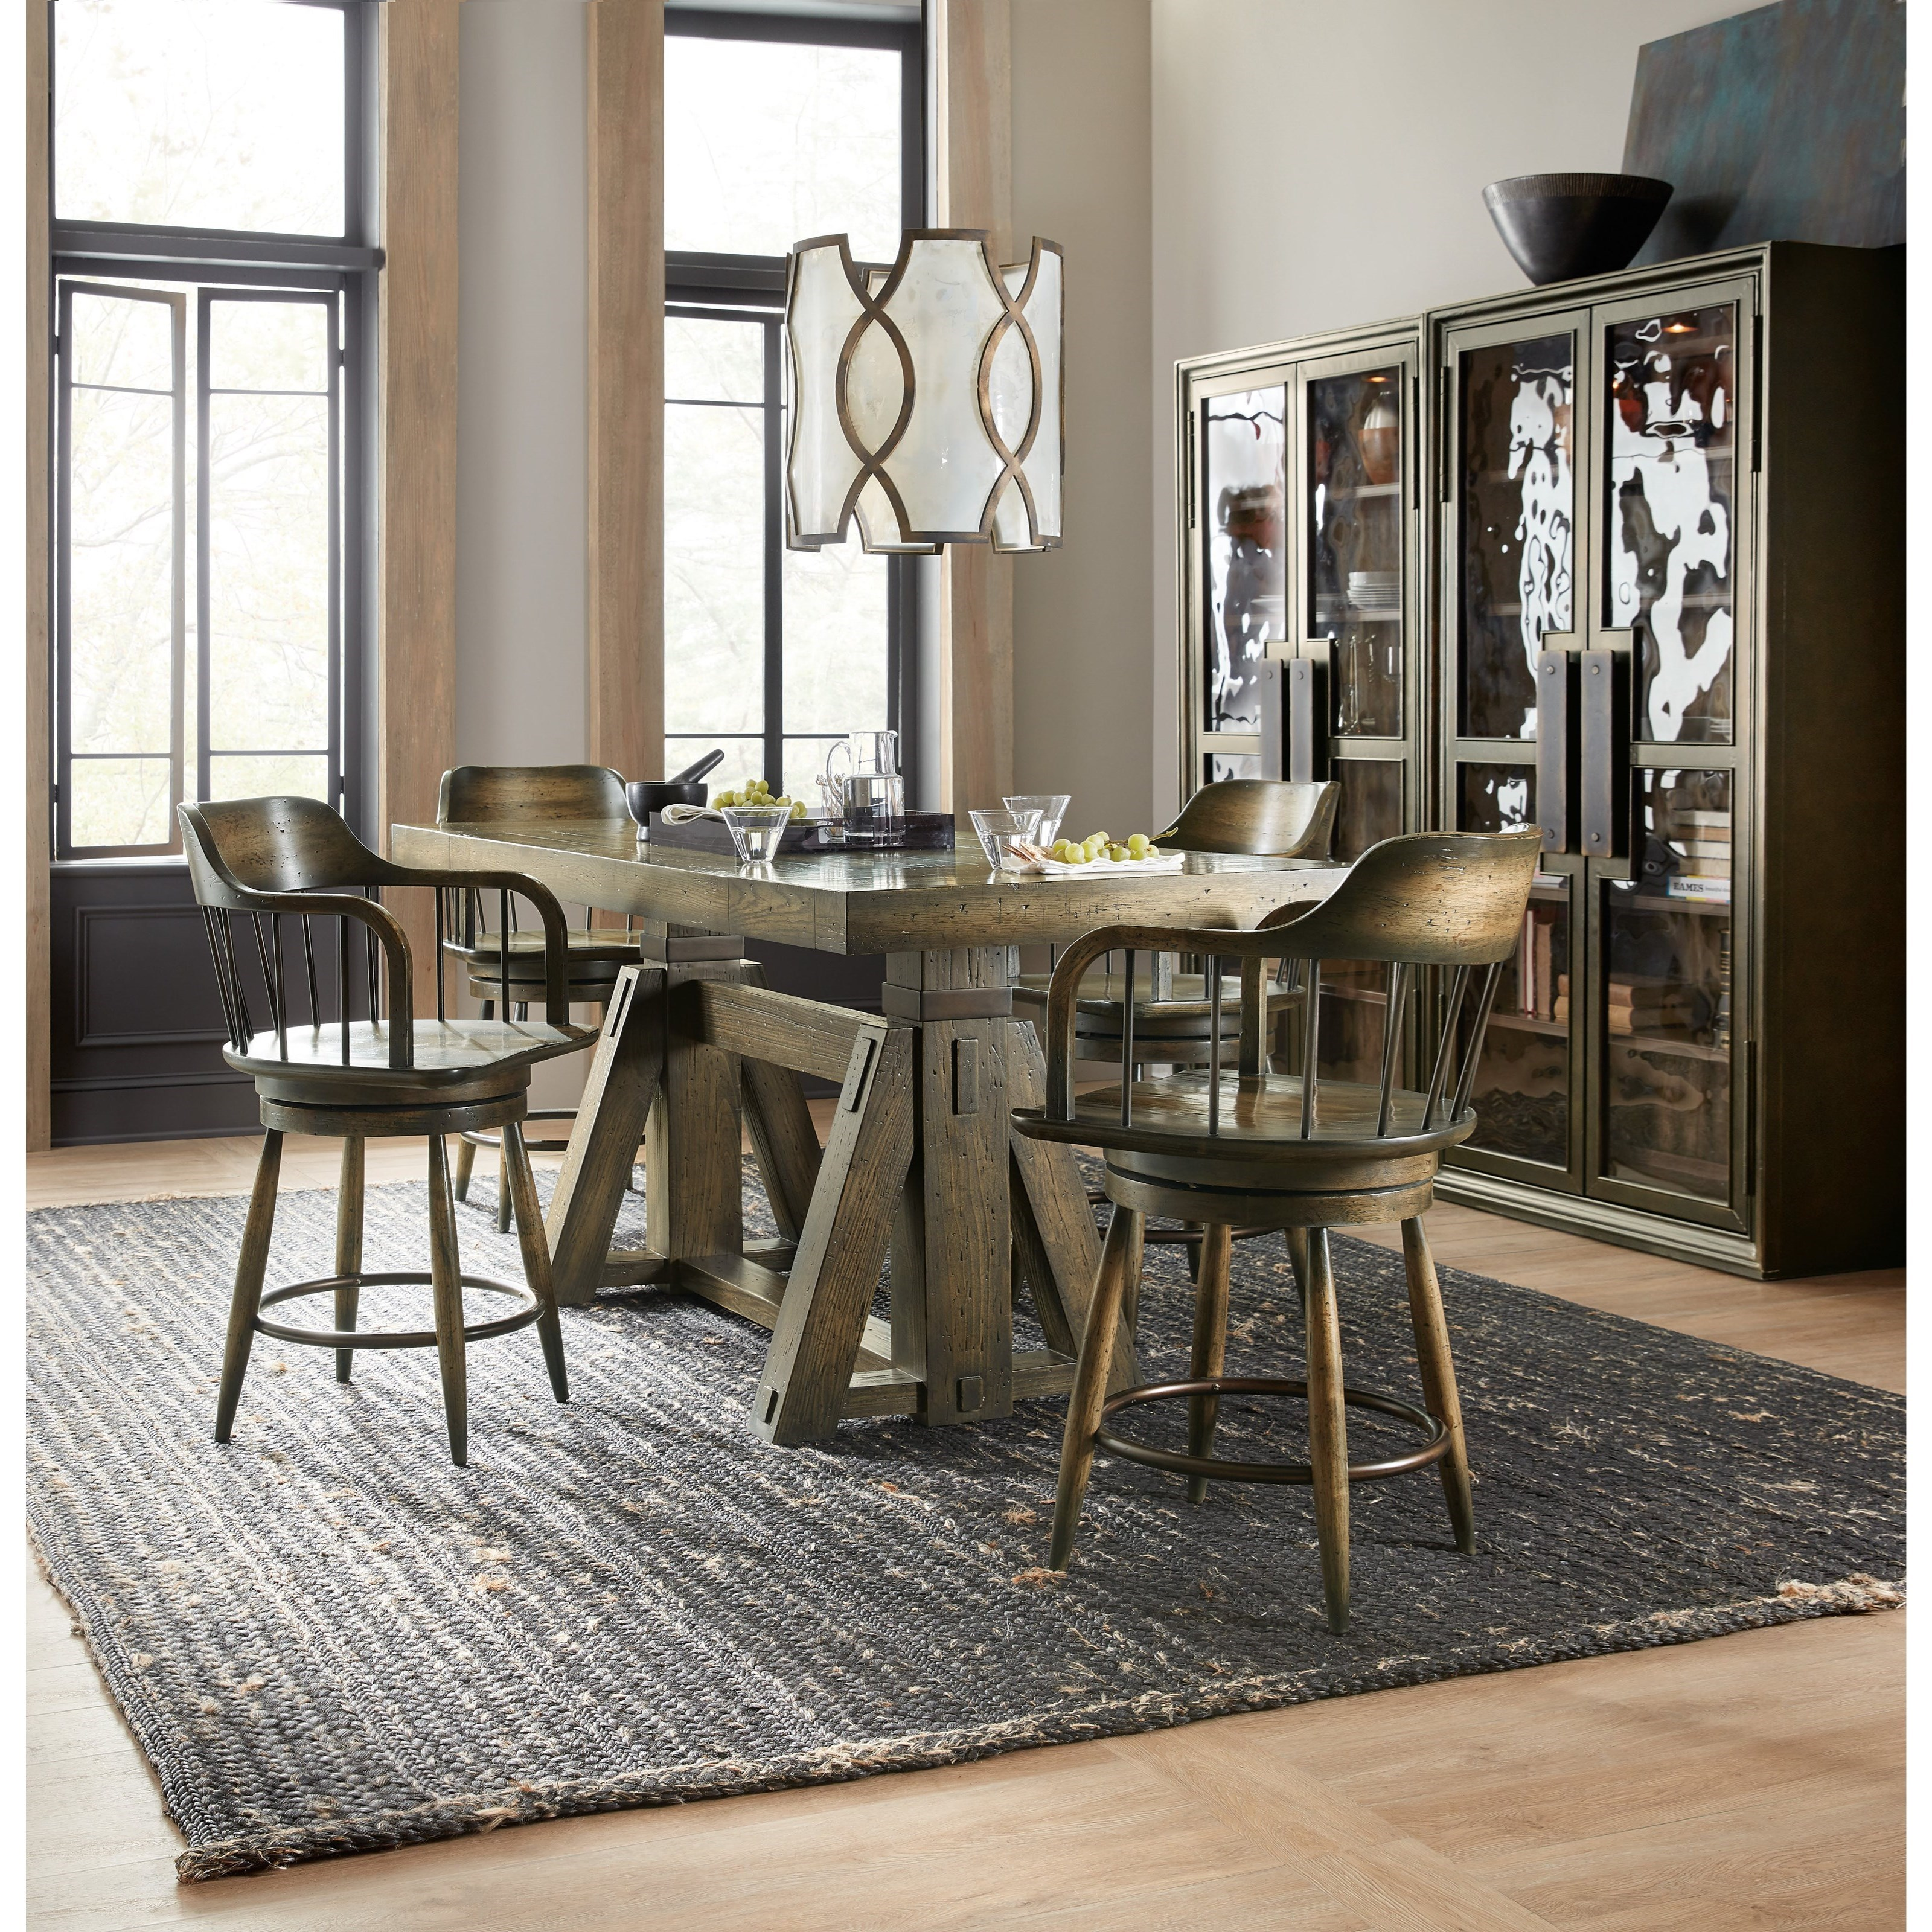 American Life-Crafted Casual Dining Room Group by Hooker Furniture at Alison Craig Home Furnishings